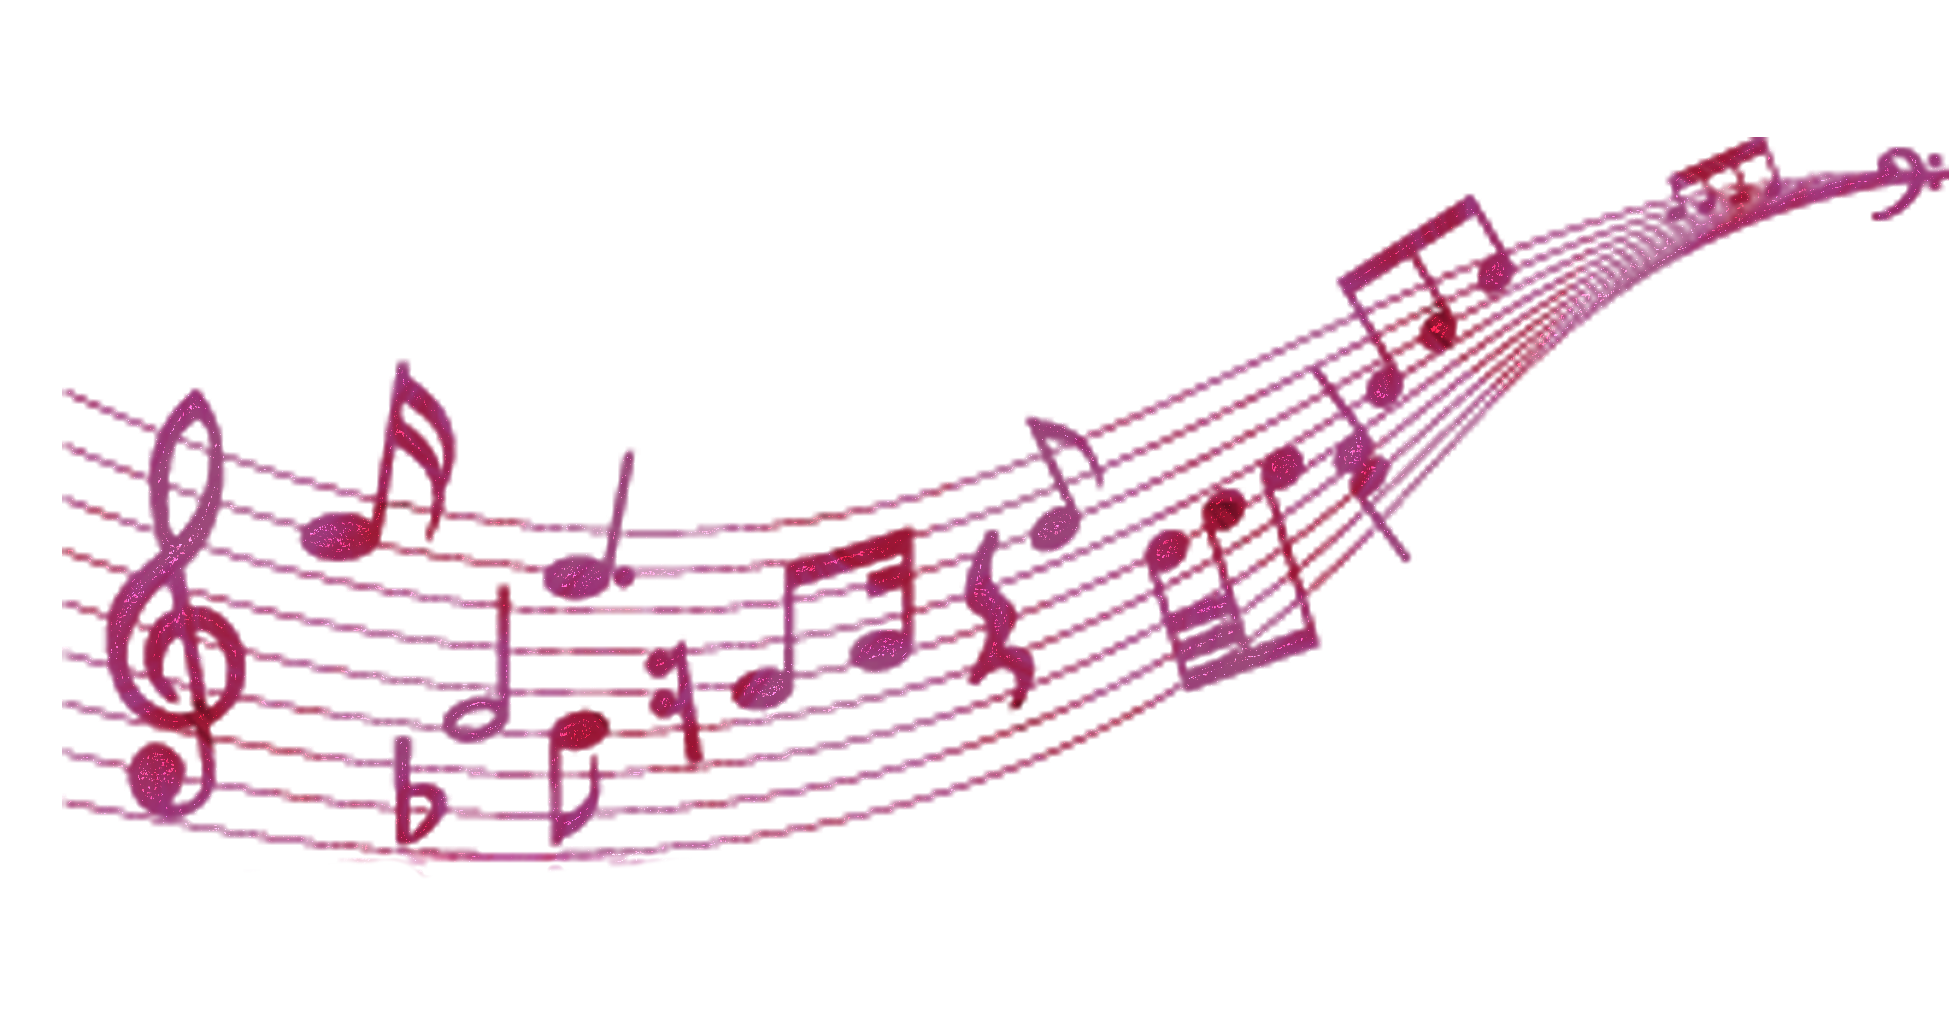 Transparent Clipart Image music icon vector1.